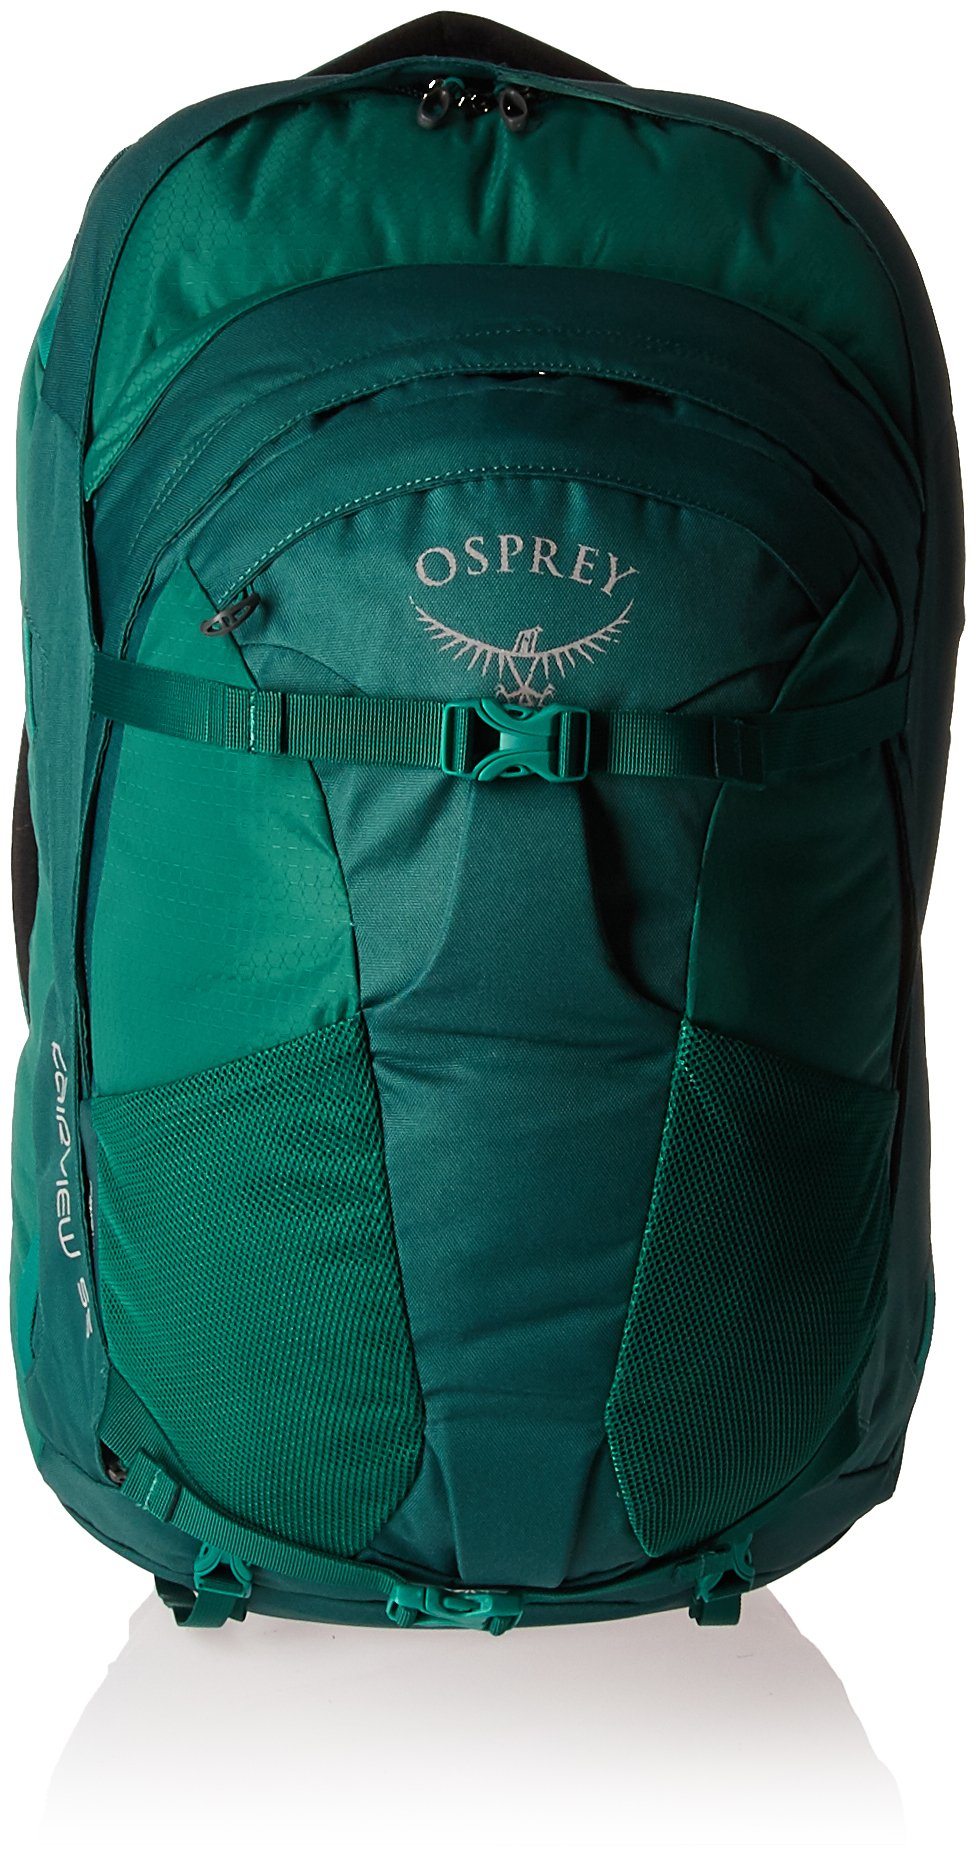 Osprey Packs Fairview 55 Travel Backpack, Rainforest Green, Small/Medium by Osprey